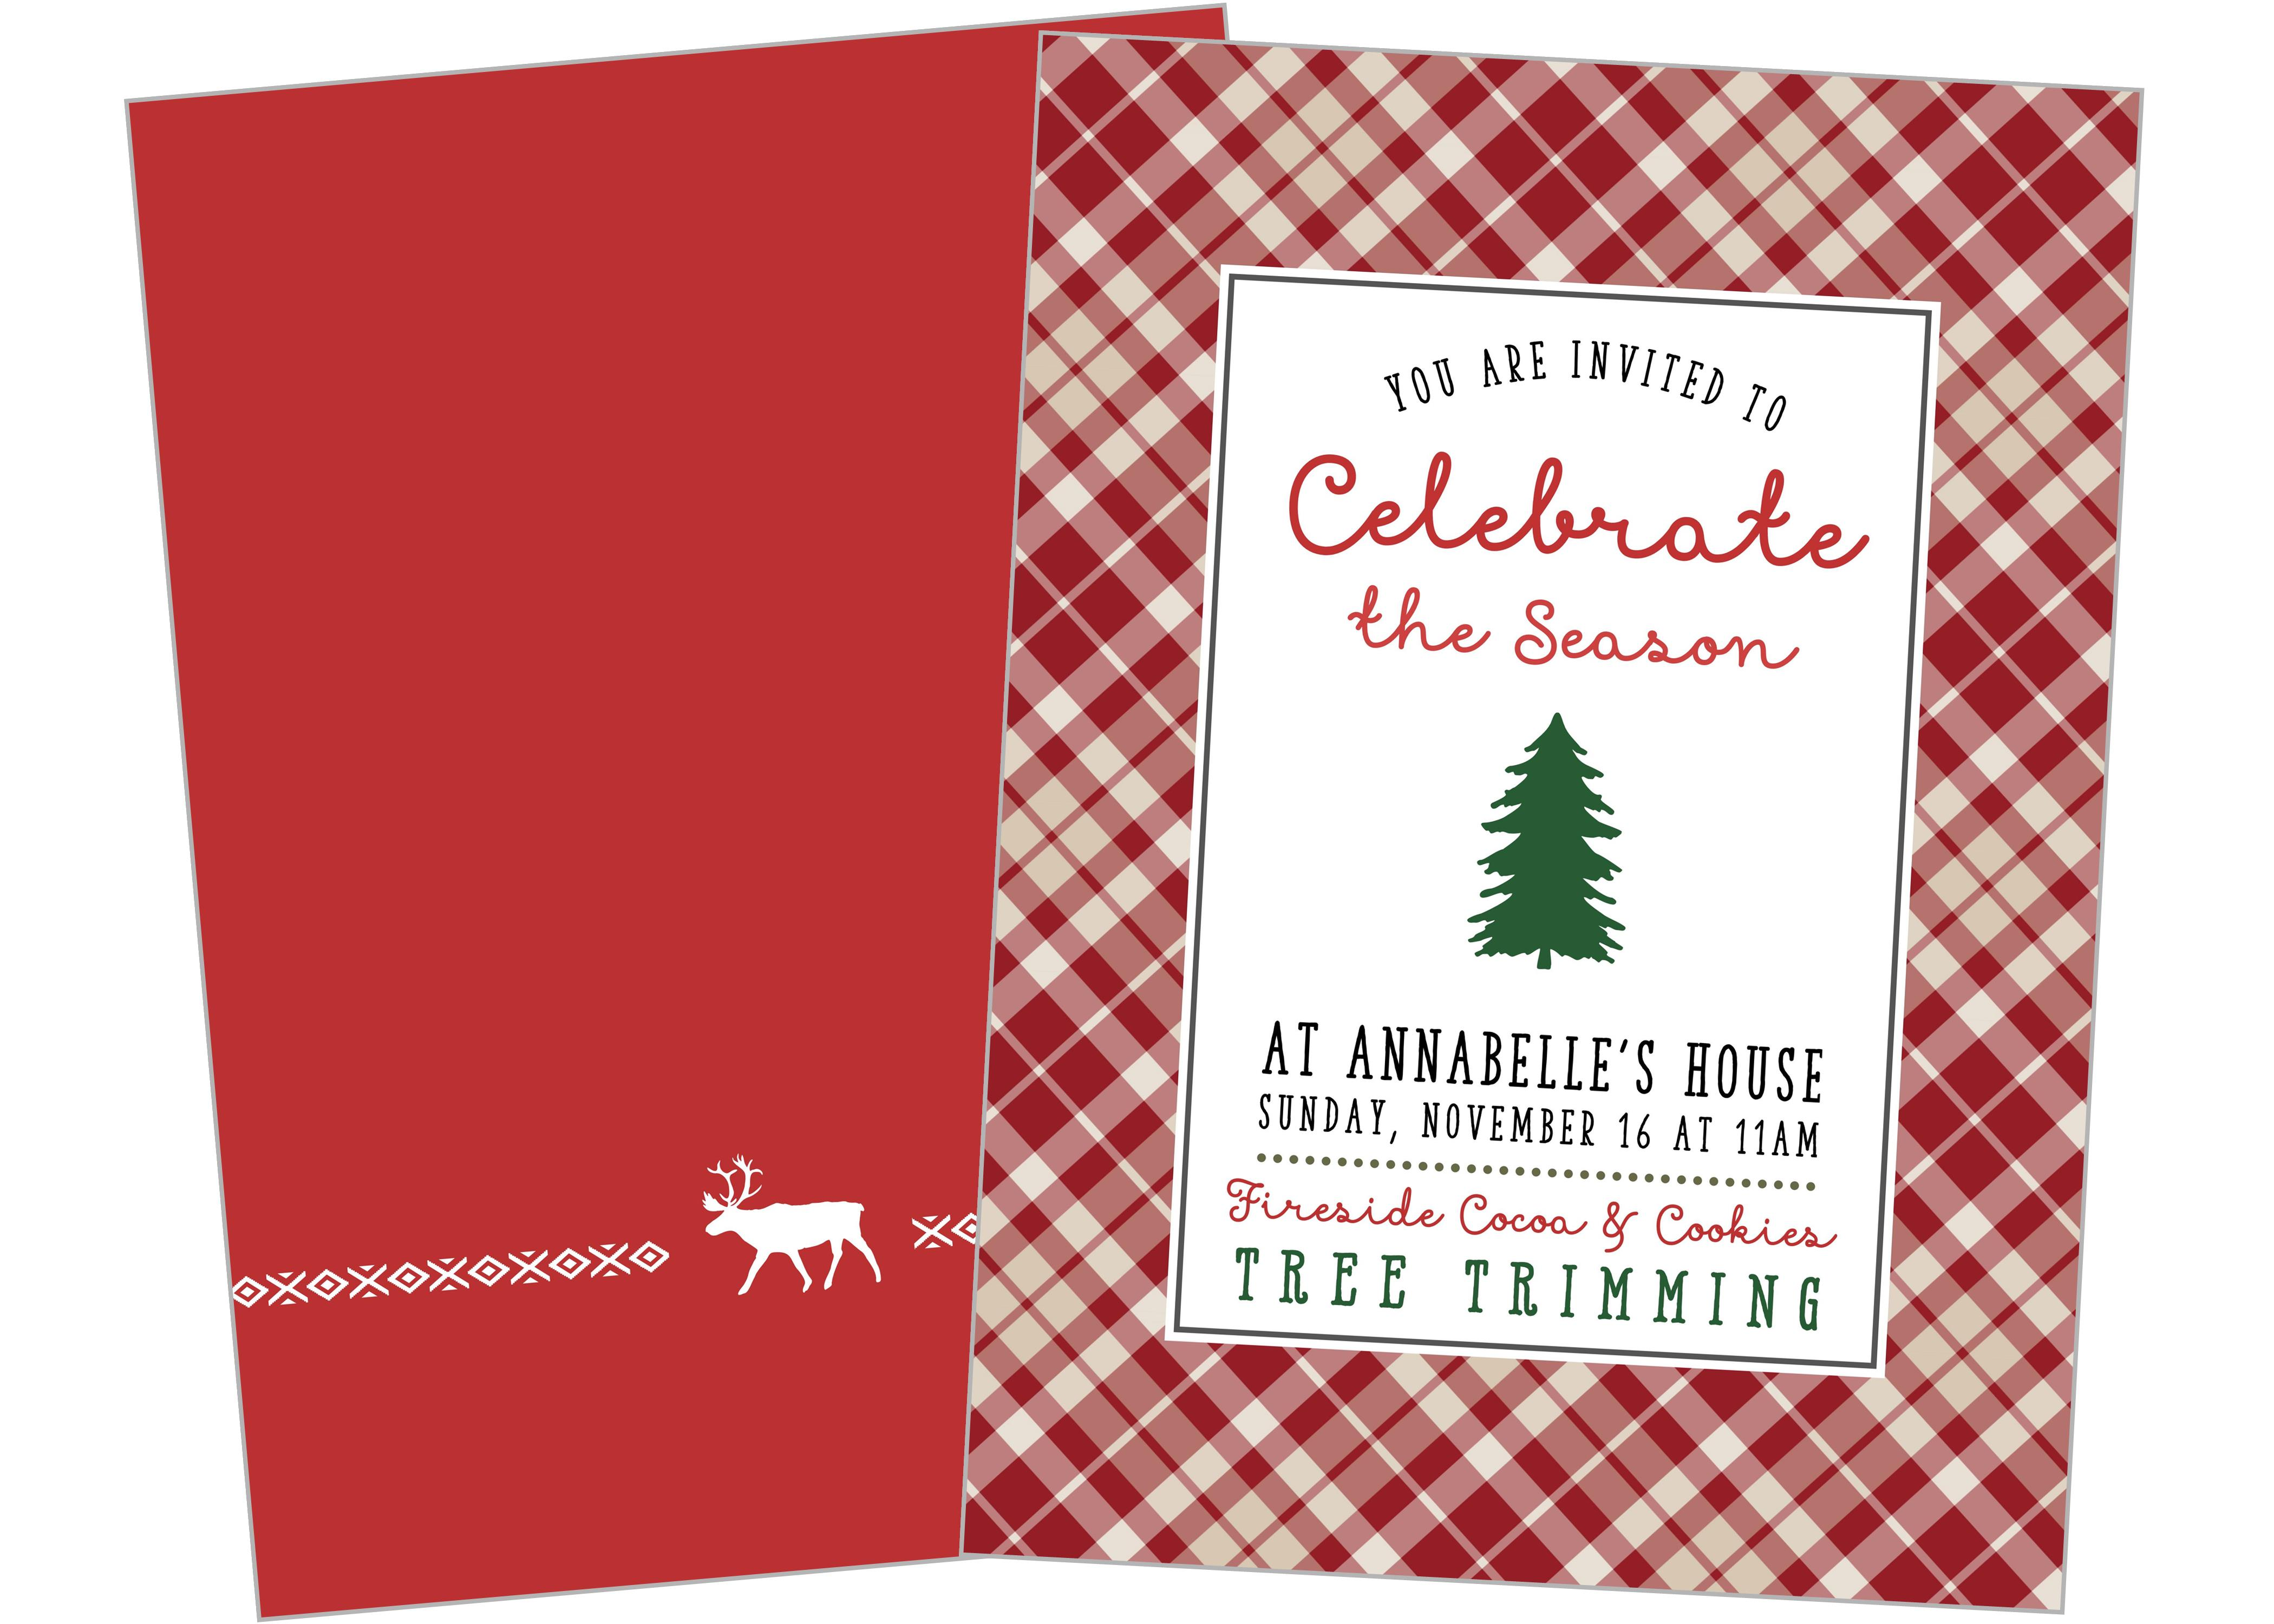 Tree trimming Party printable invitation Christmas Winter Season – Tree Trimming Party Invitation